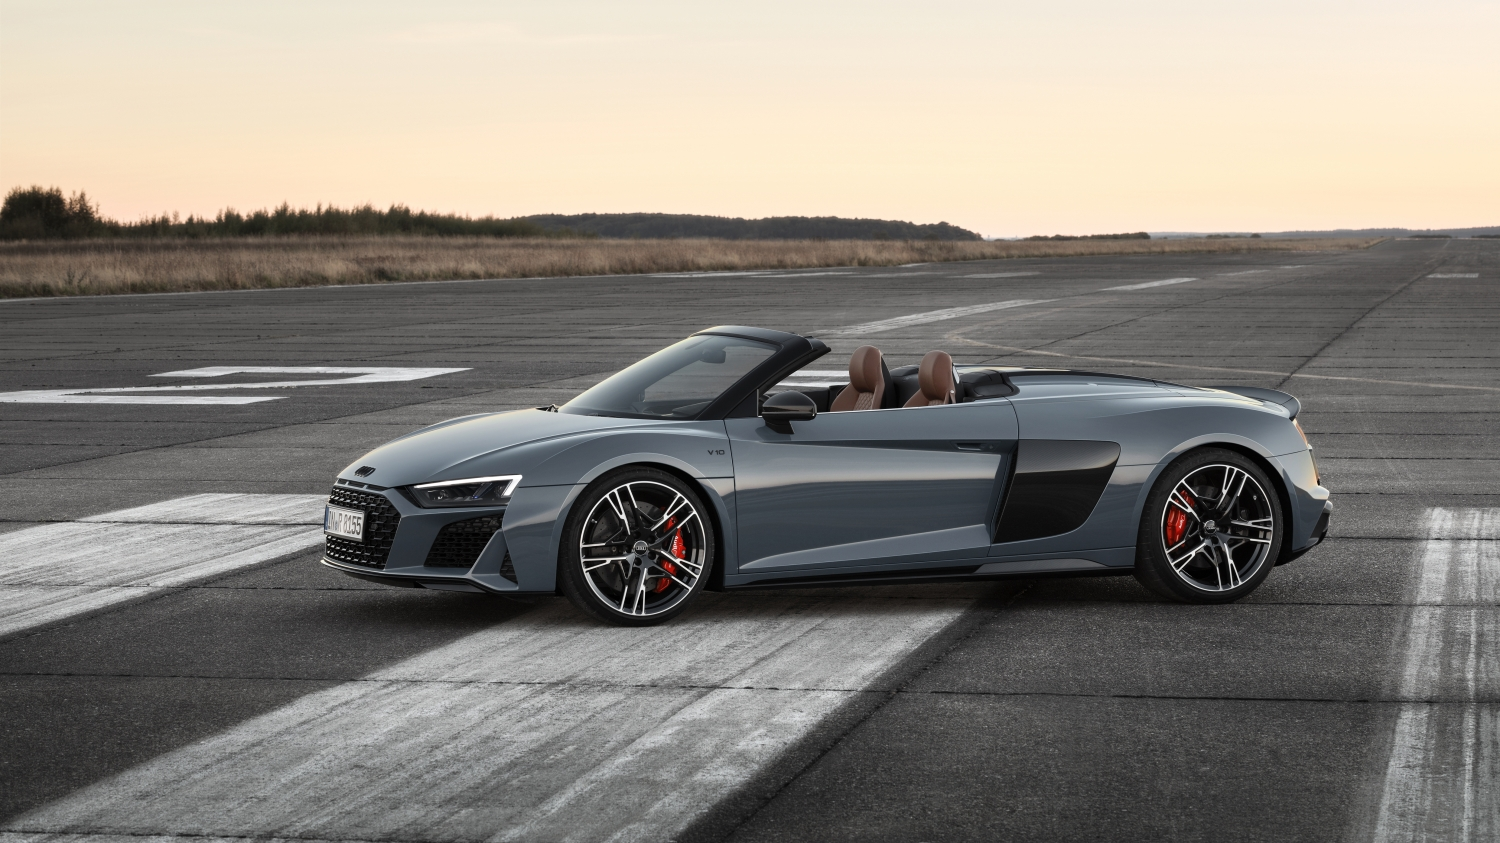 2020 Audi R8 V10 performance Spyder